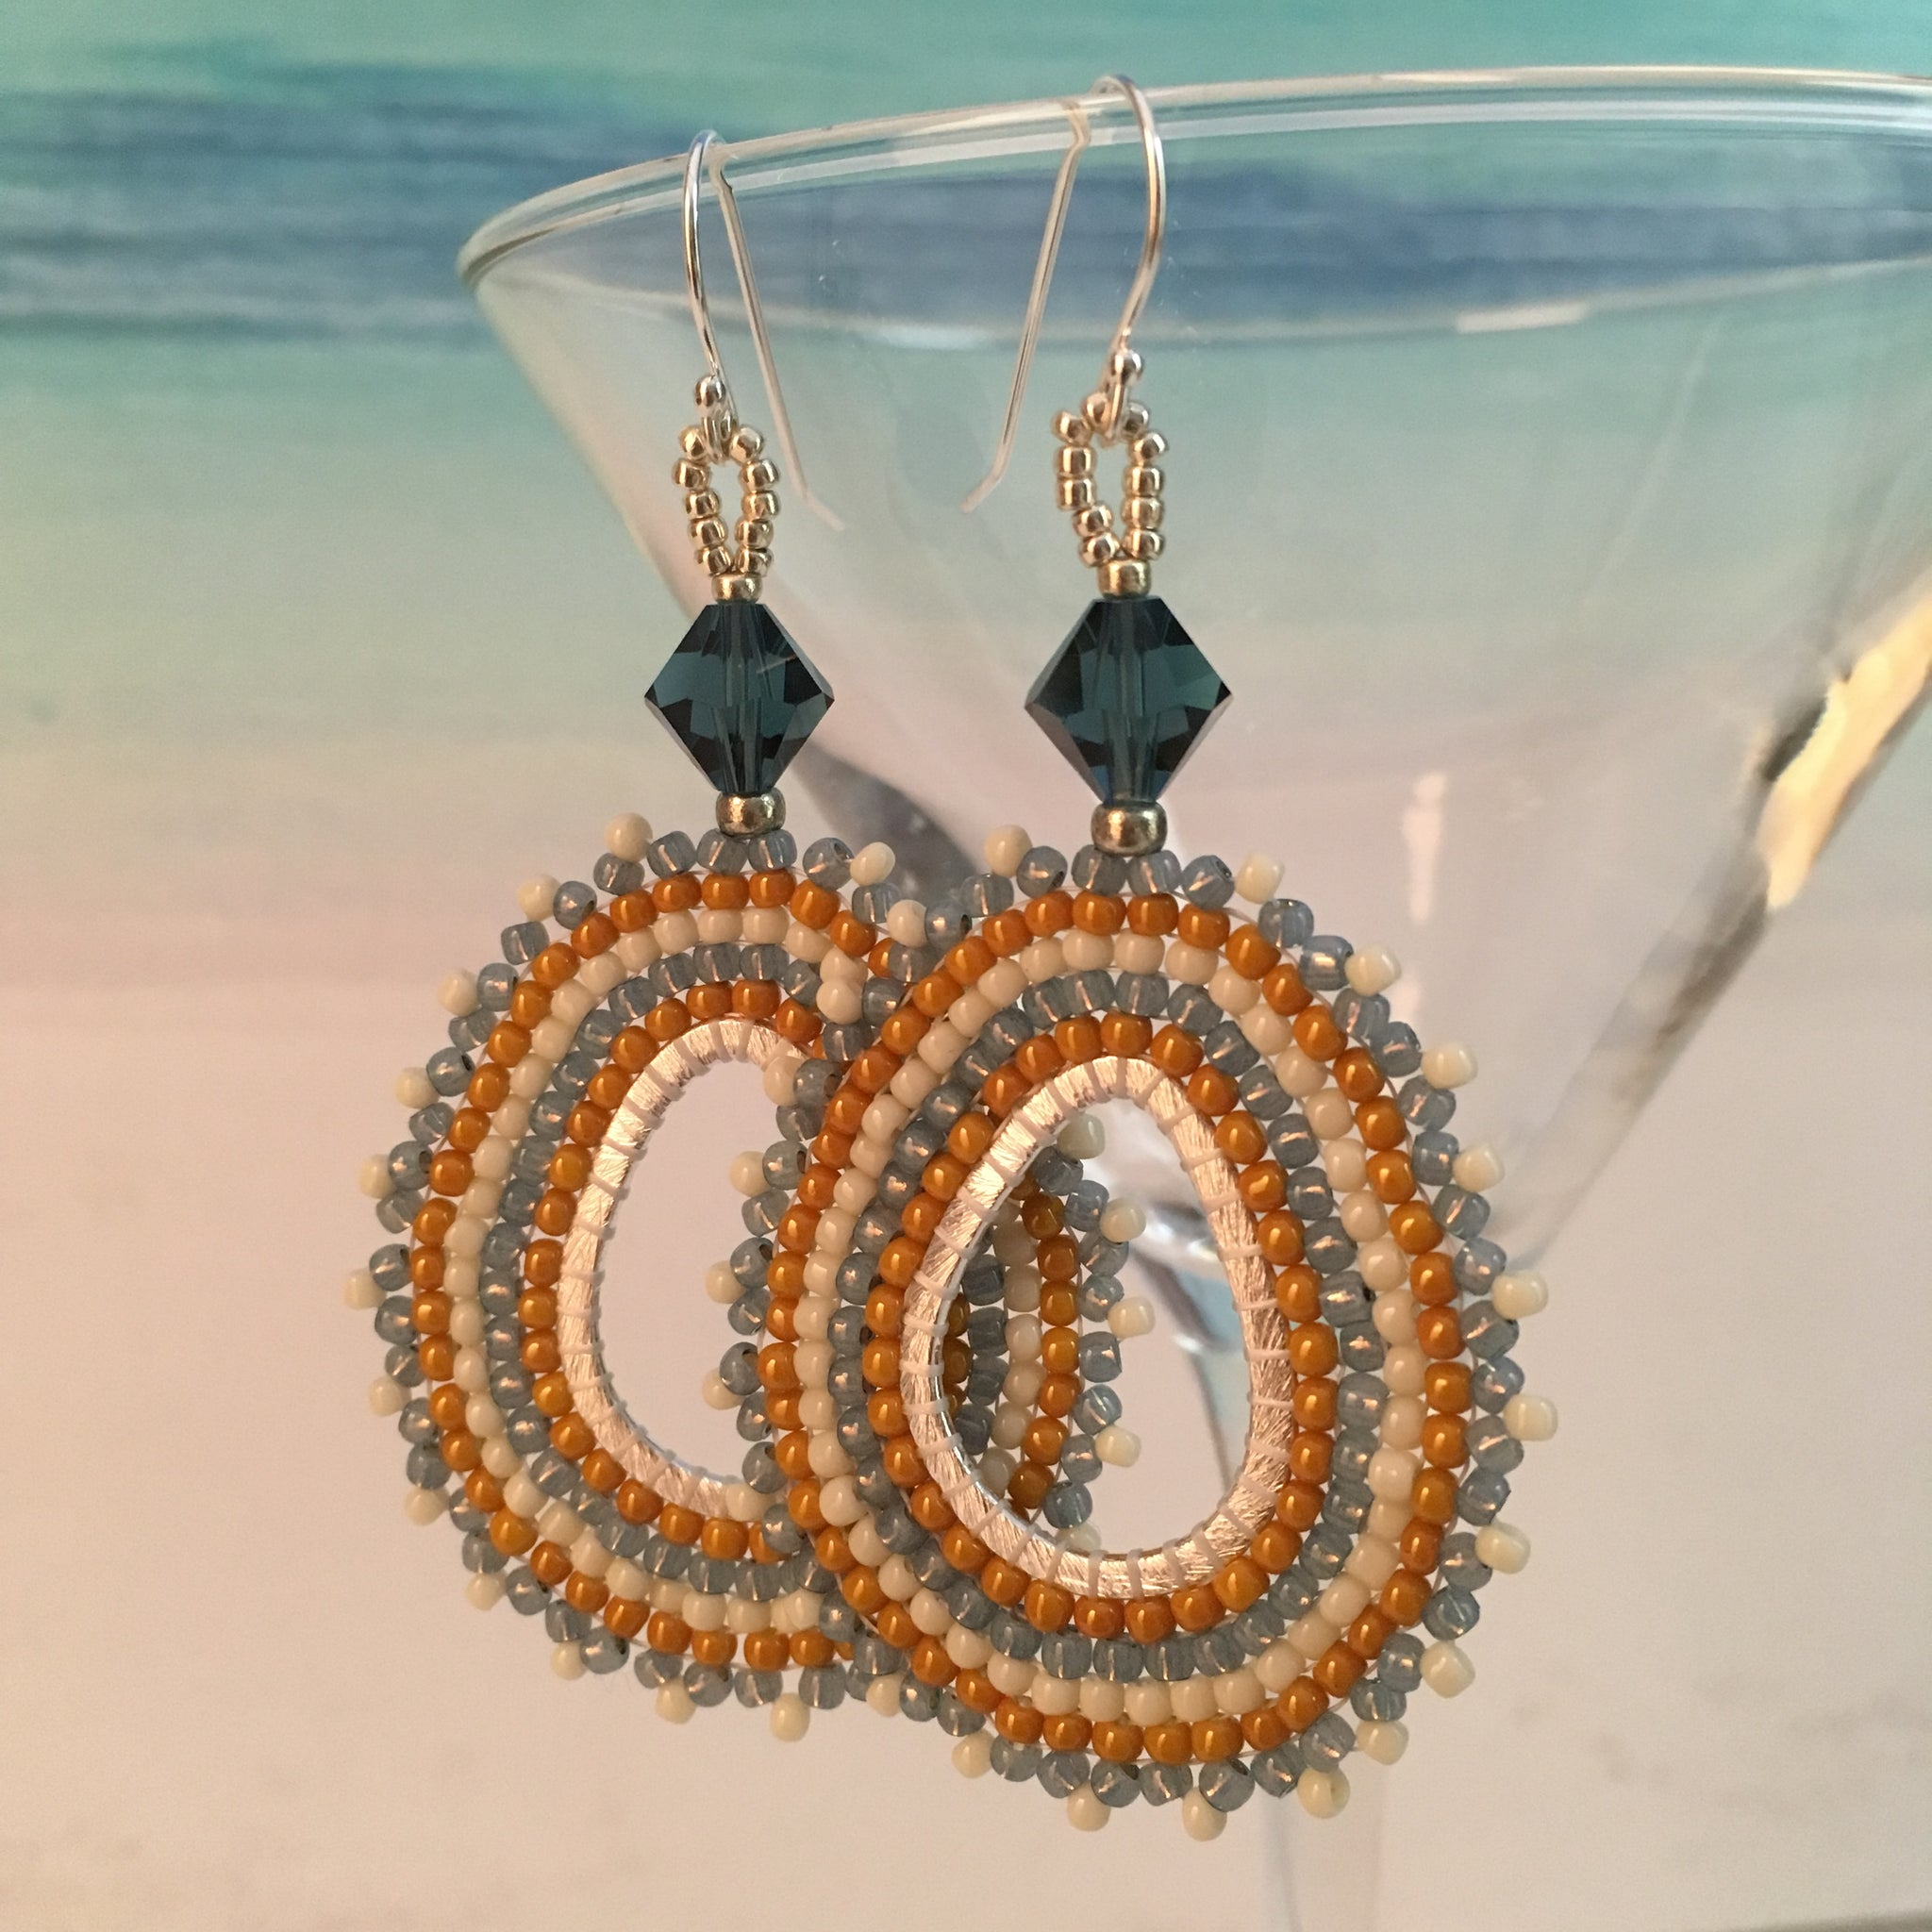 Misty Blue, Yellow and Cream on Oval Hoops with Swarovski™ Crystals